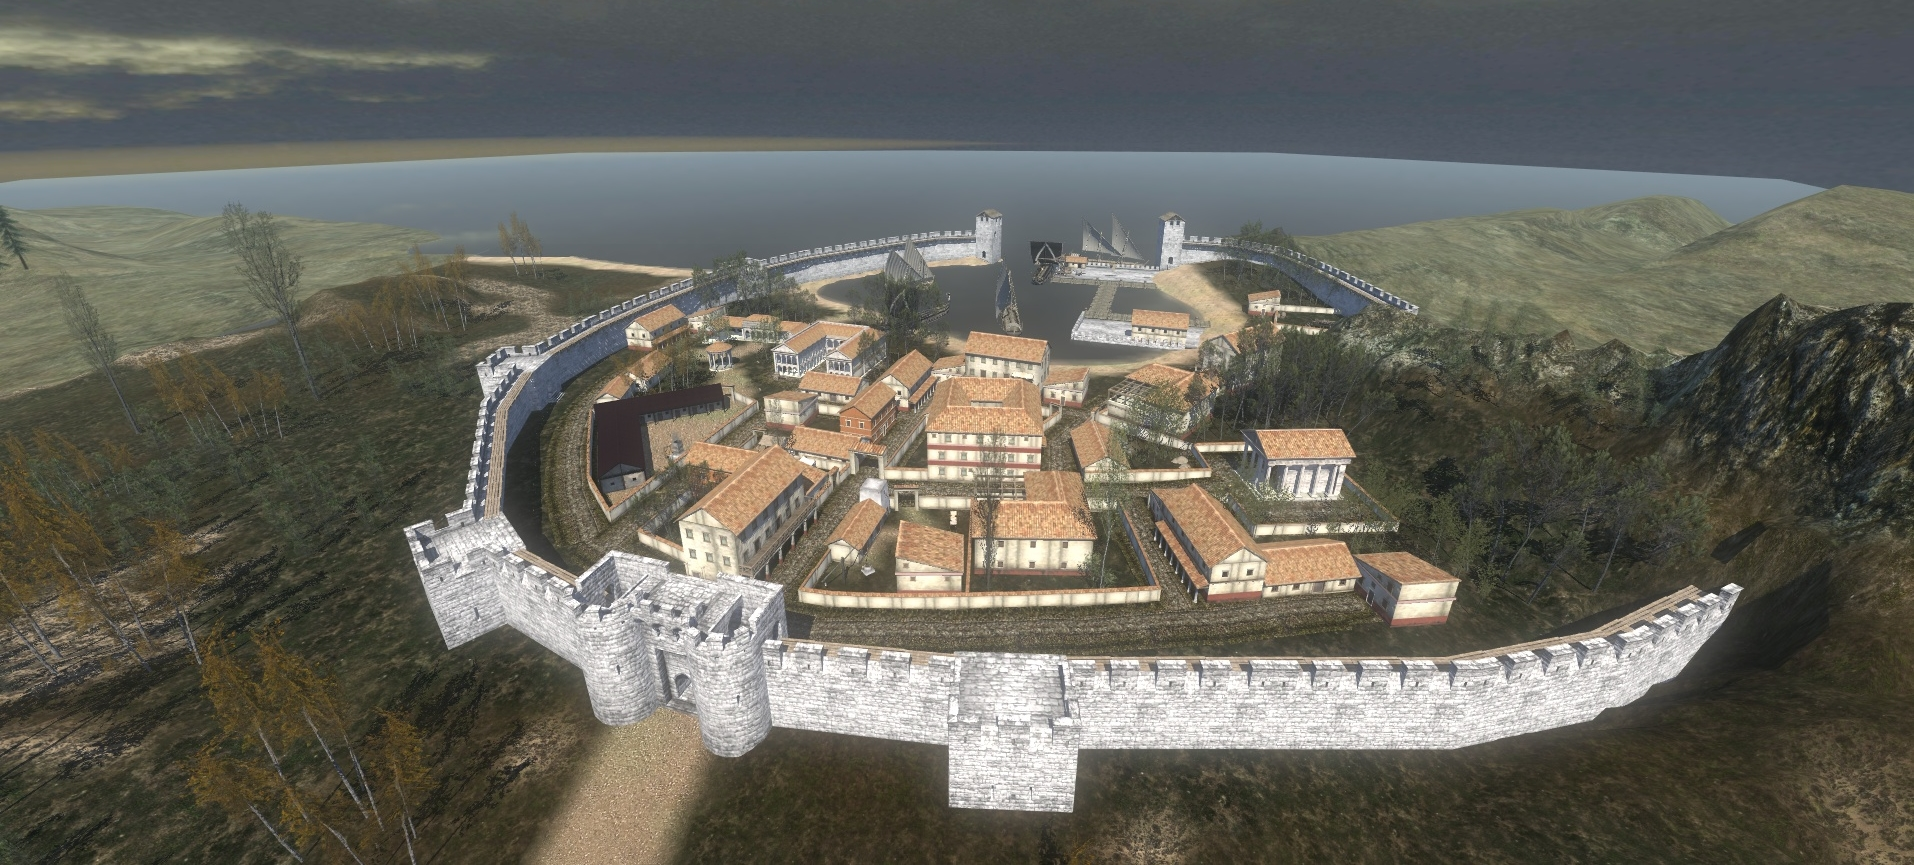 mount and blade 1.011 uni loader download